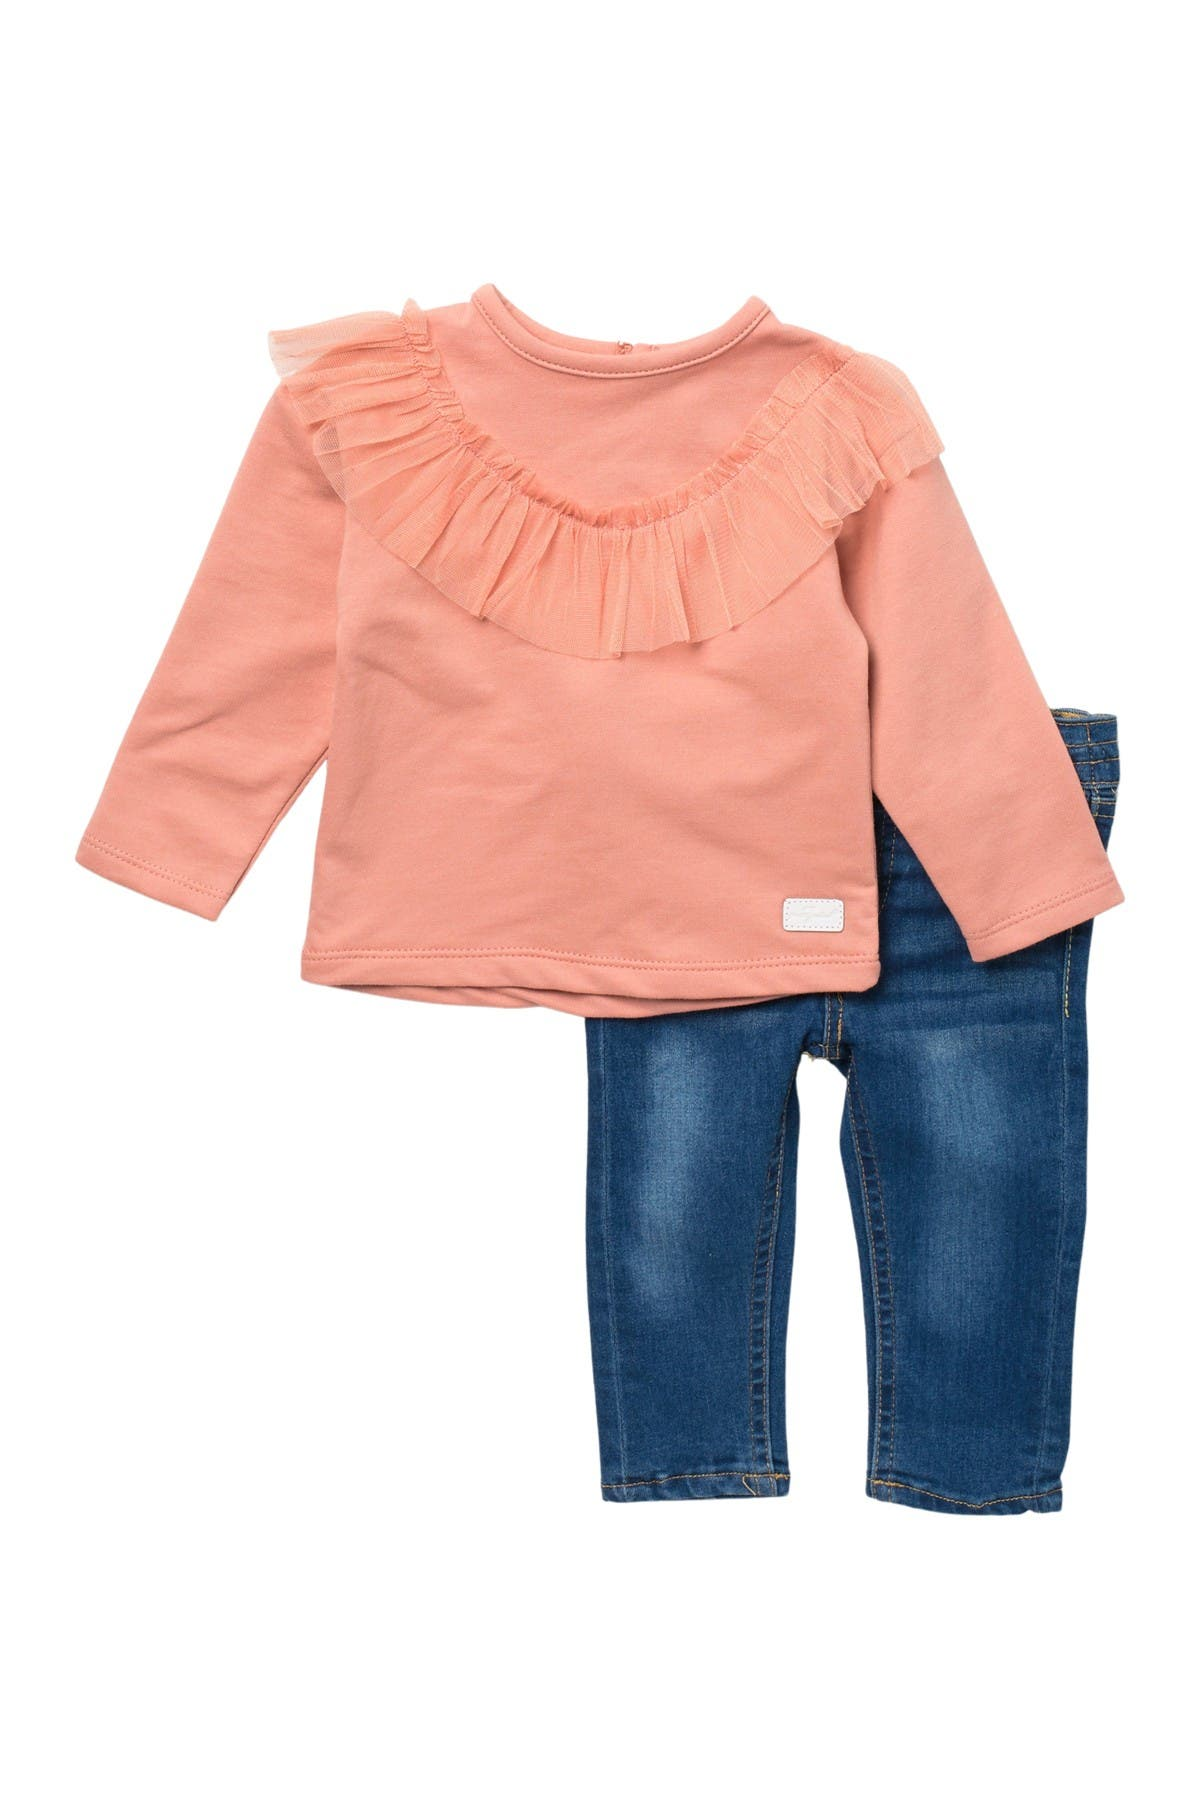 Image of 7 For All Mankind Ruffle Top & Jeans Set